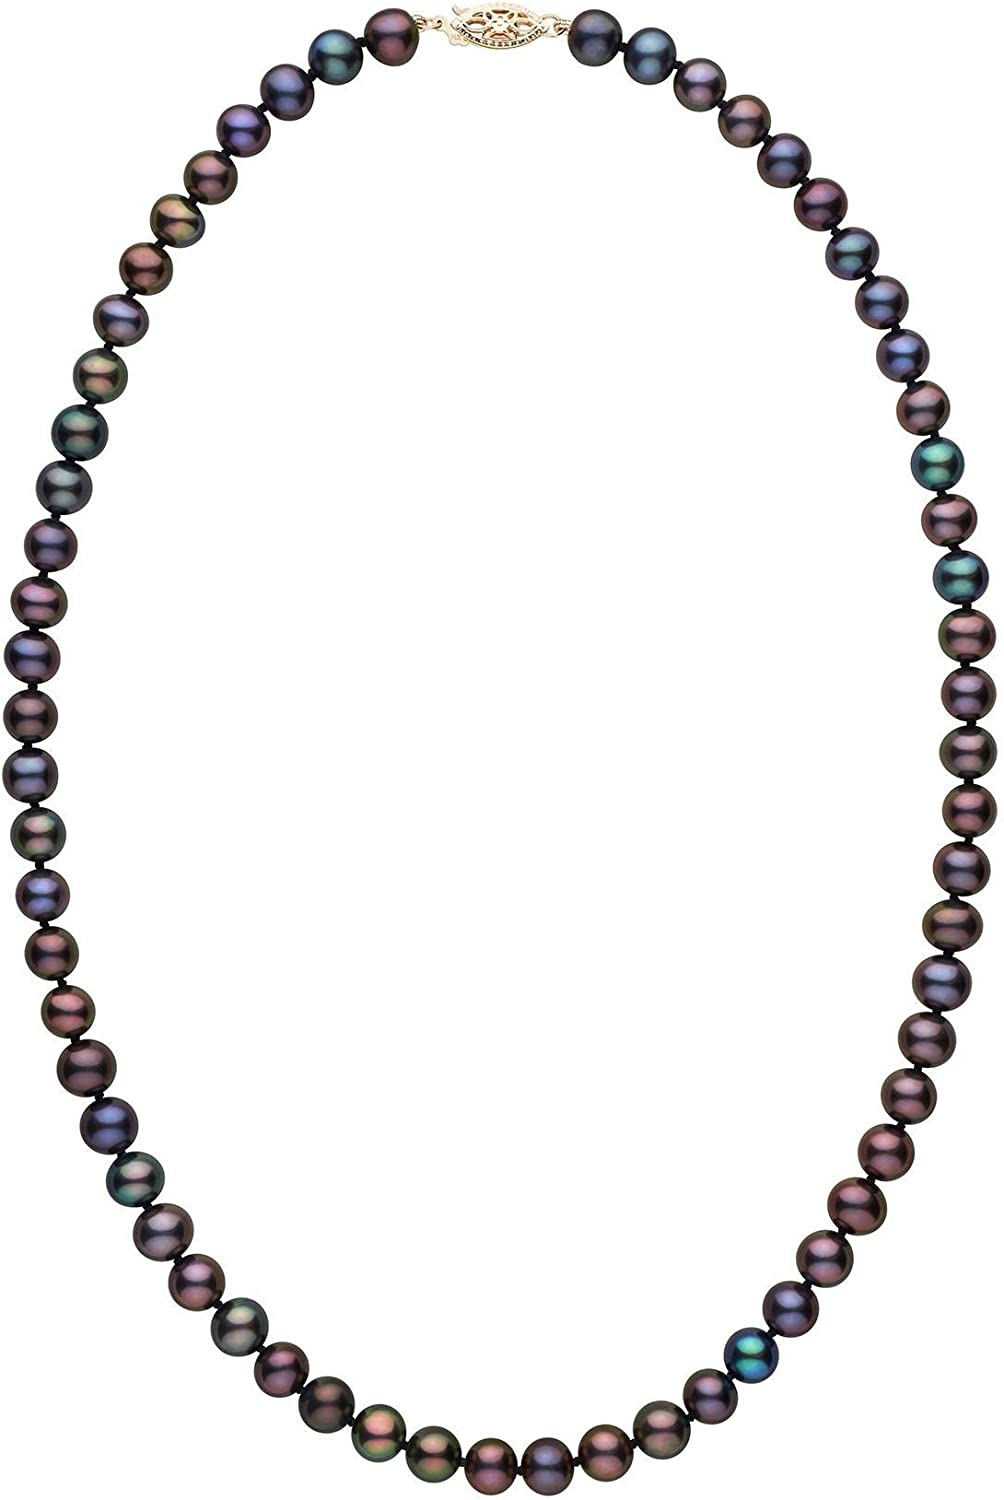 Multicolor Freshwater Cultured Pearl Necklace 8.5-9.0 mm 16 Inch AA